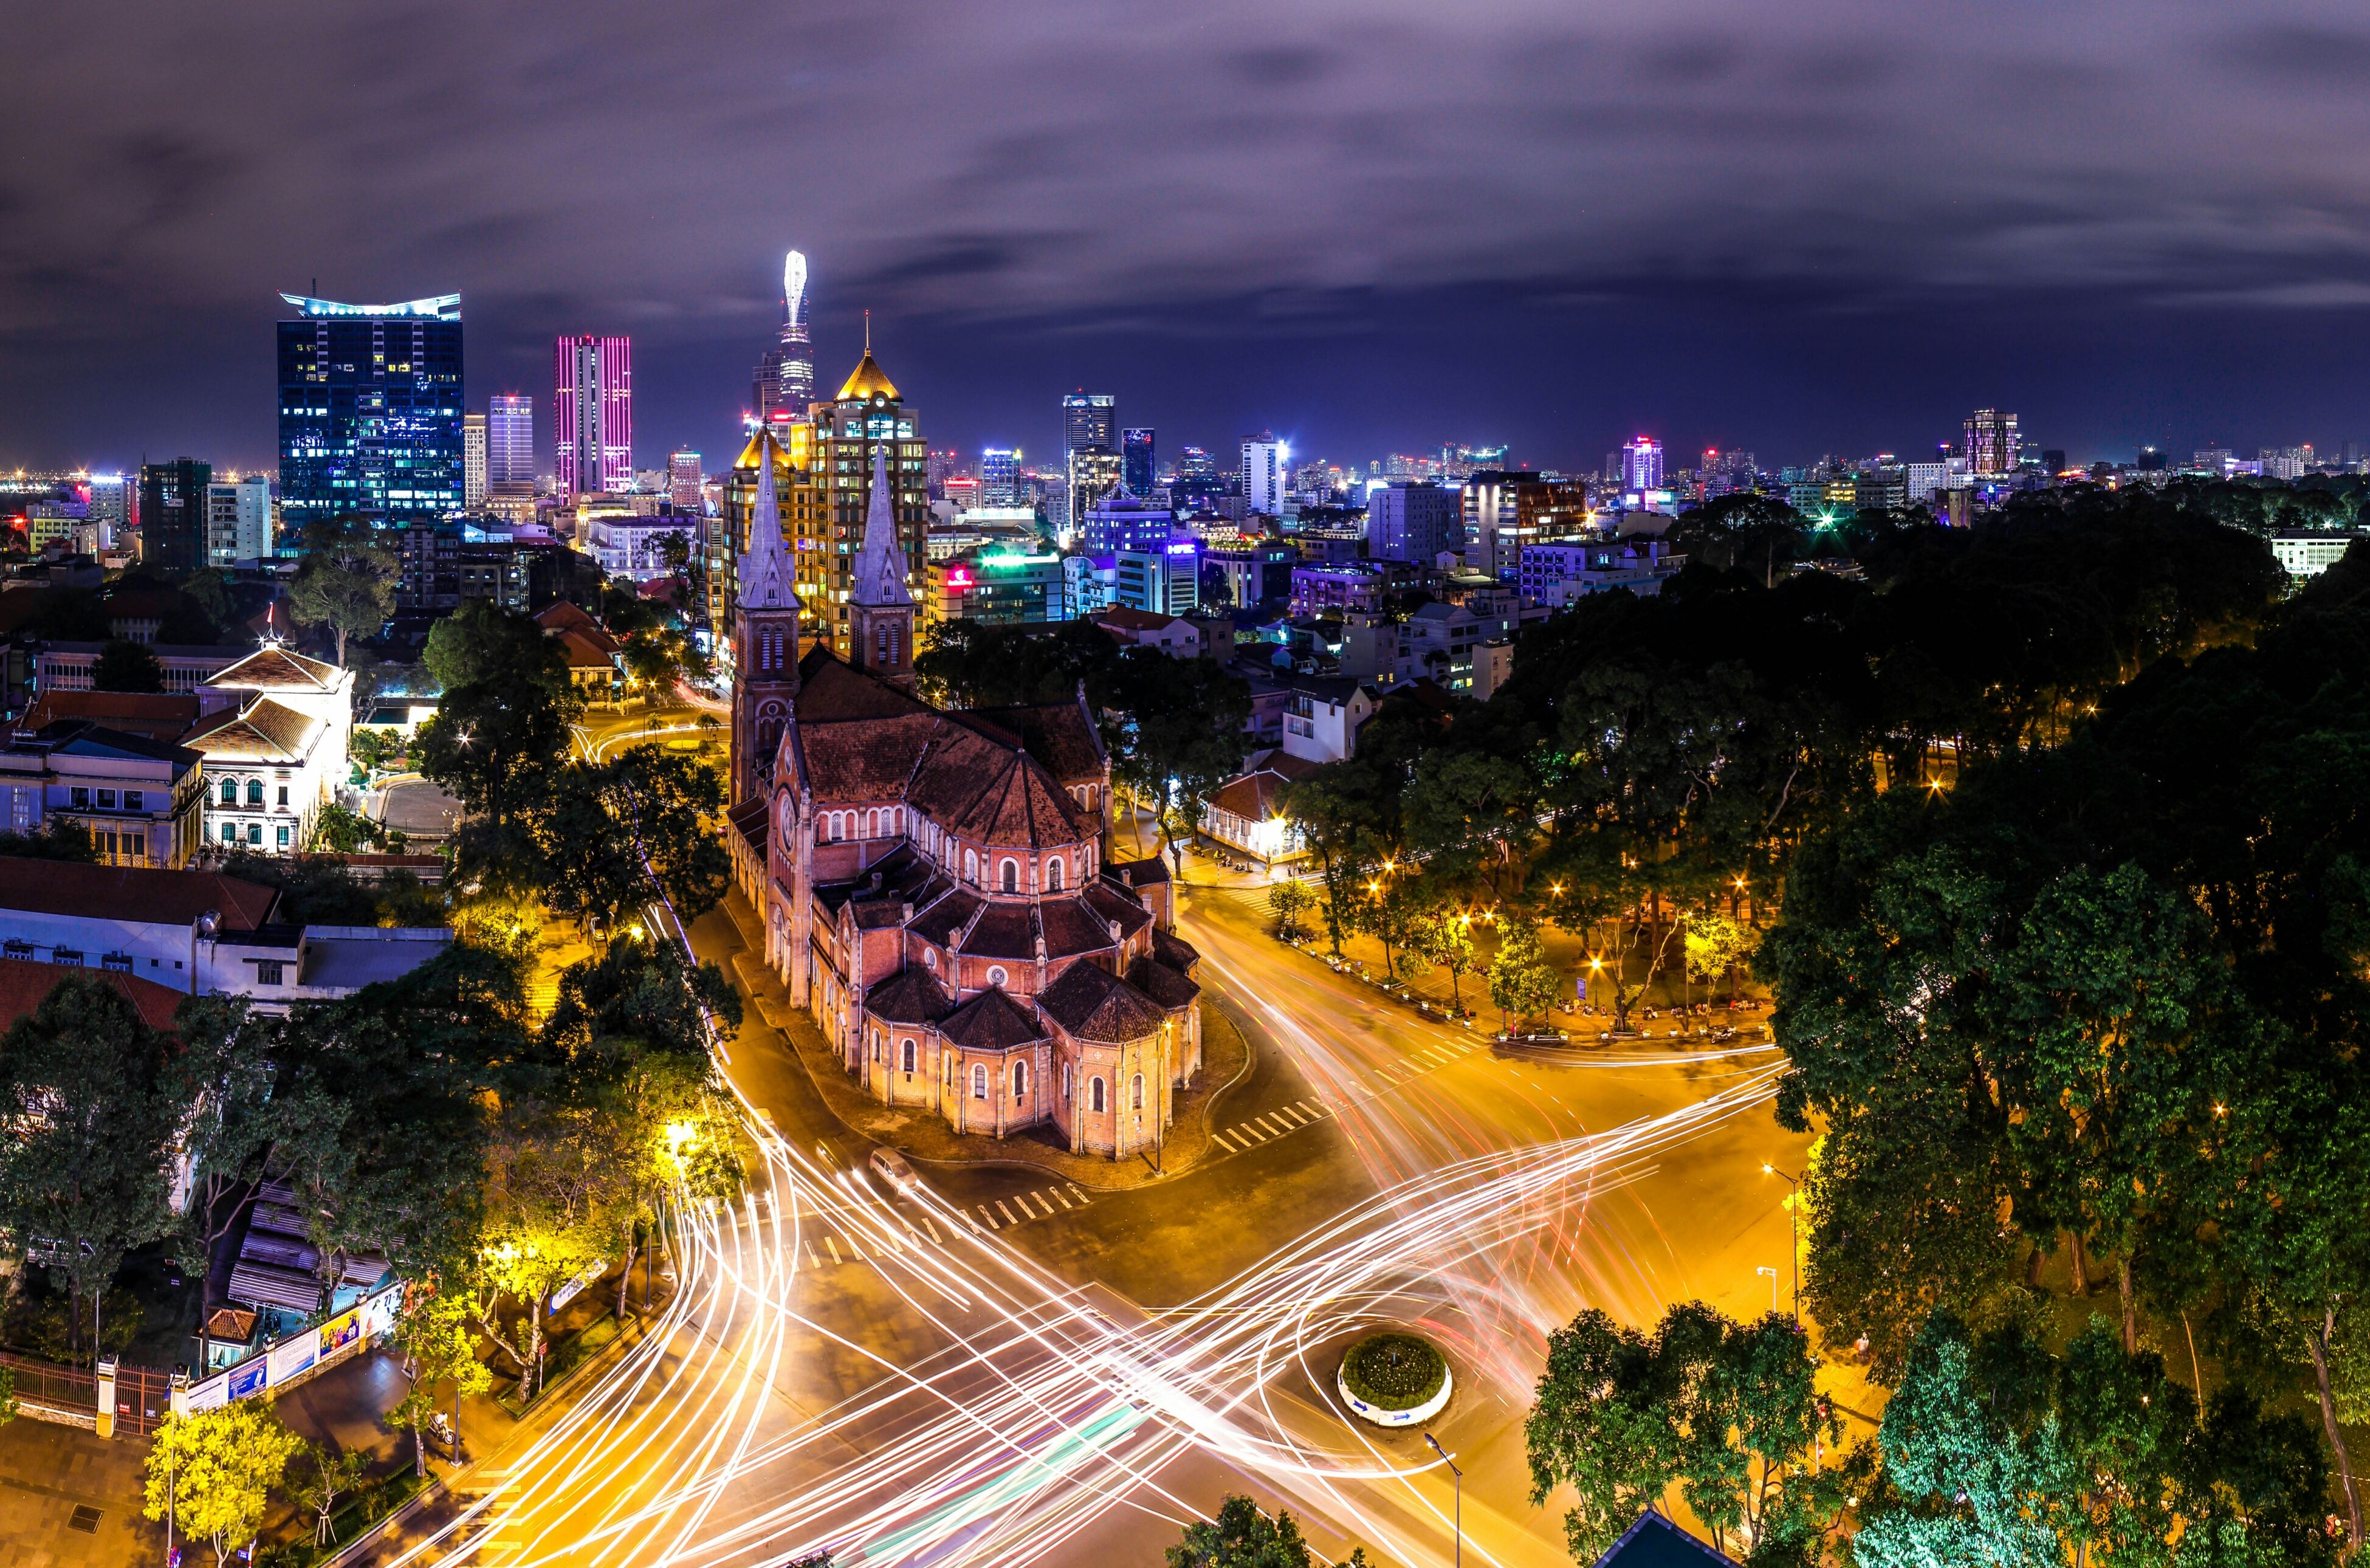 illuminated, city, building exterior, night, architecture, built structure, cityscape, high angle view, light trail, transportation, city life, road, long exposure, sky, skyscraper, street, modern, tree, car, traffic